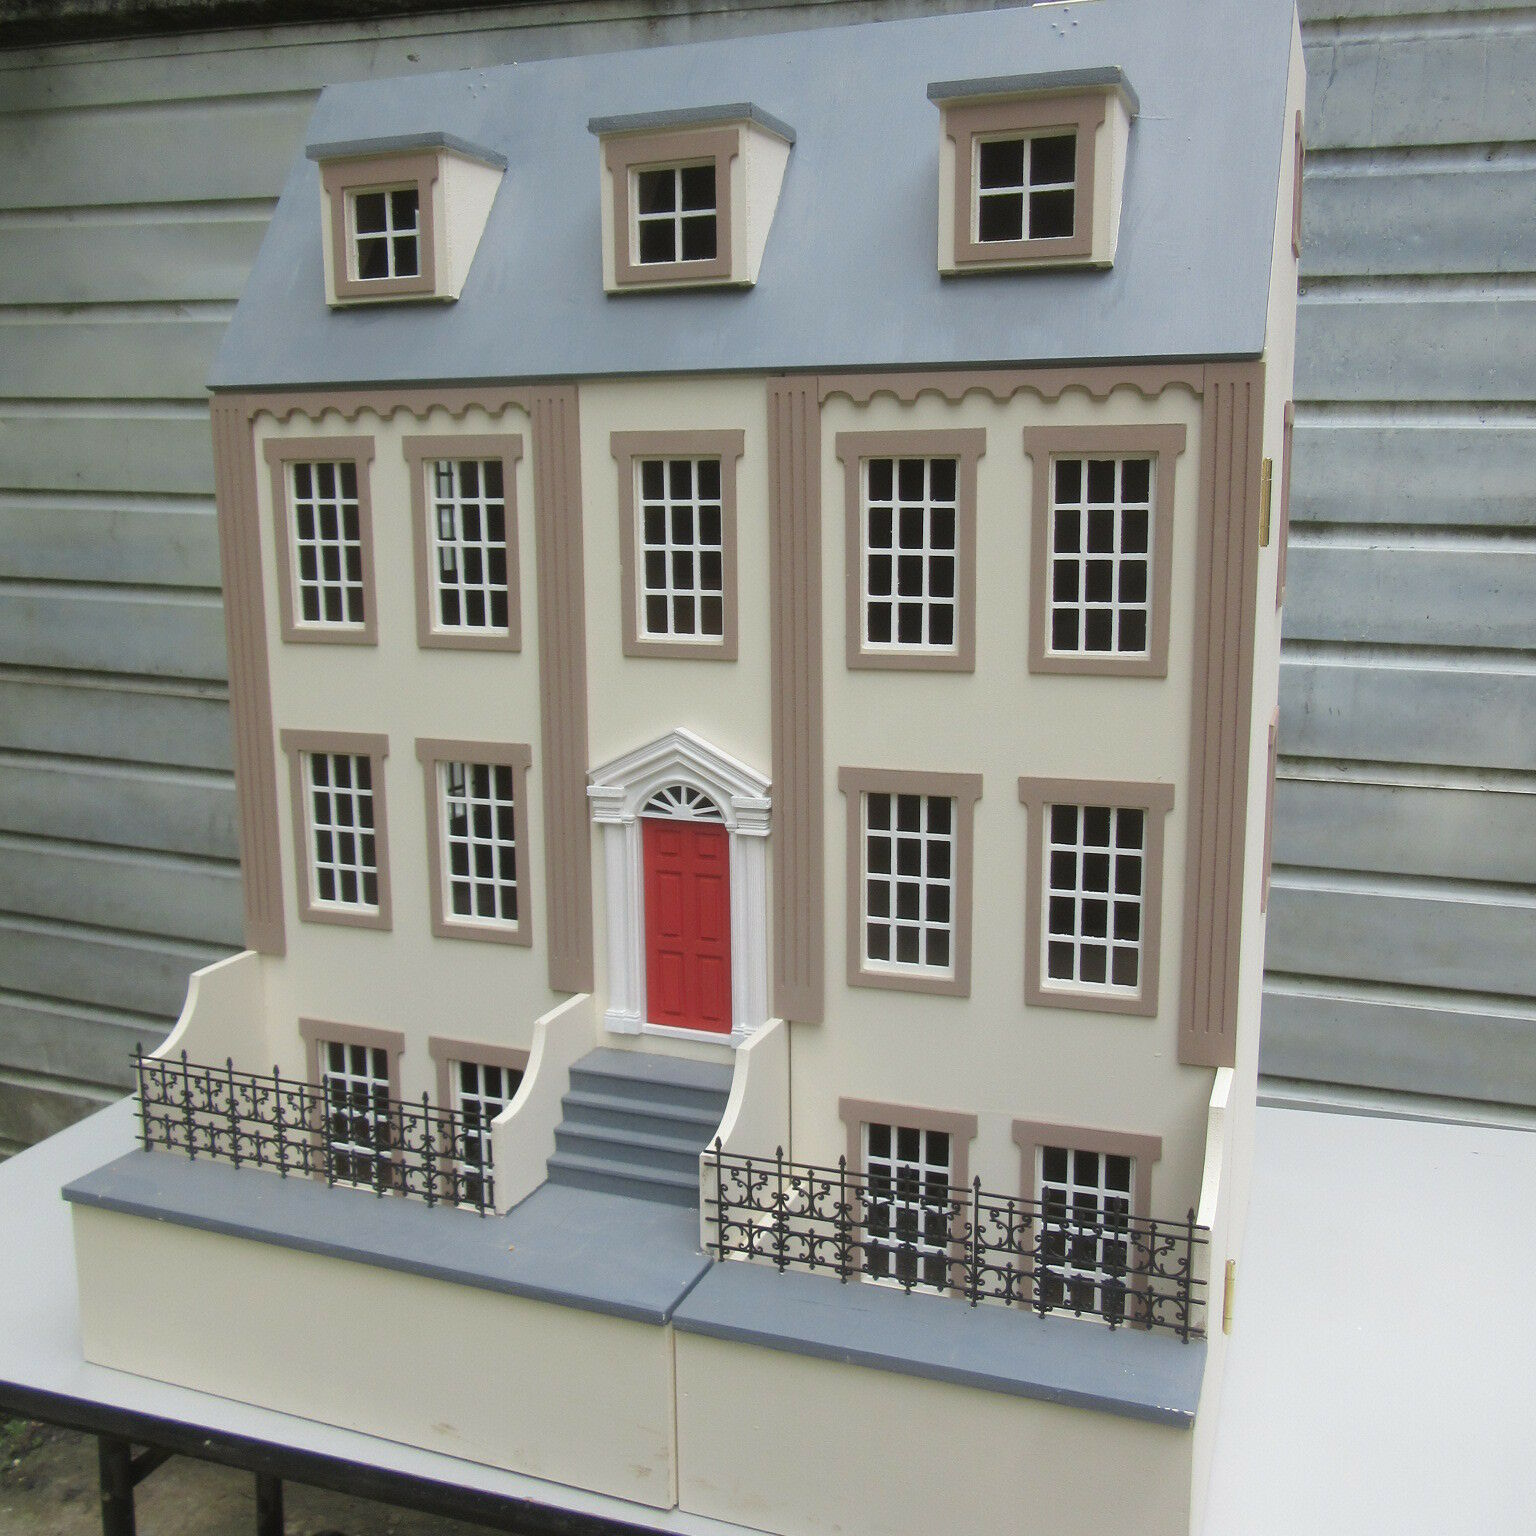 1 12 scale Dolls House The Jackson 8 room kit by DHD Dolls House Direct